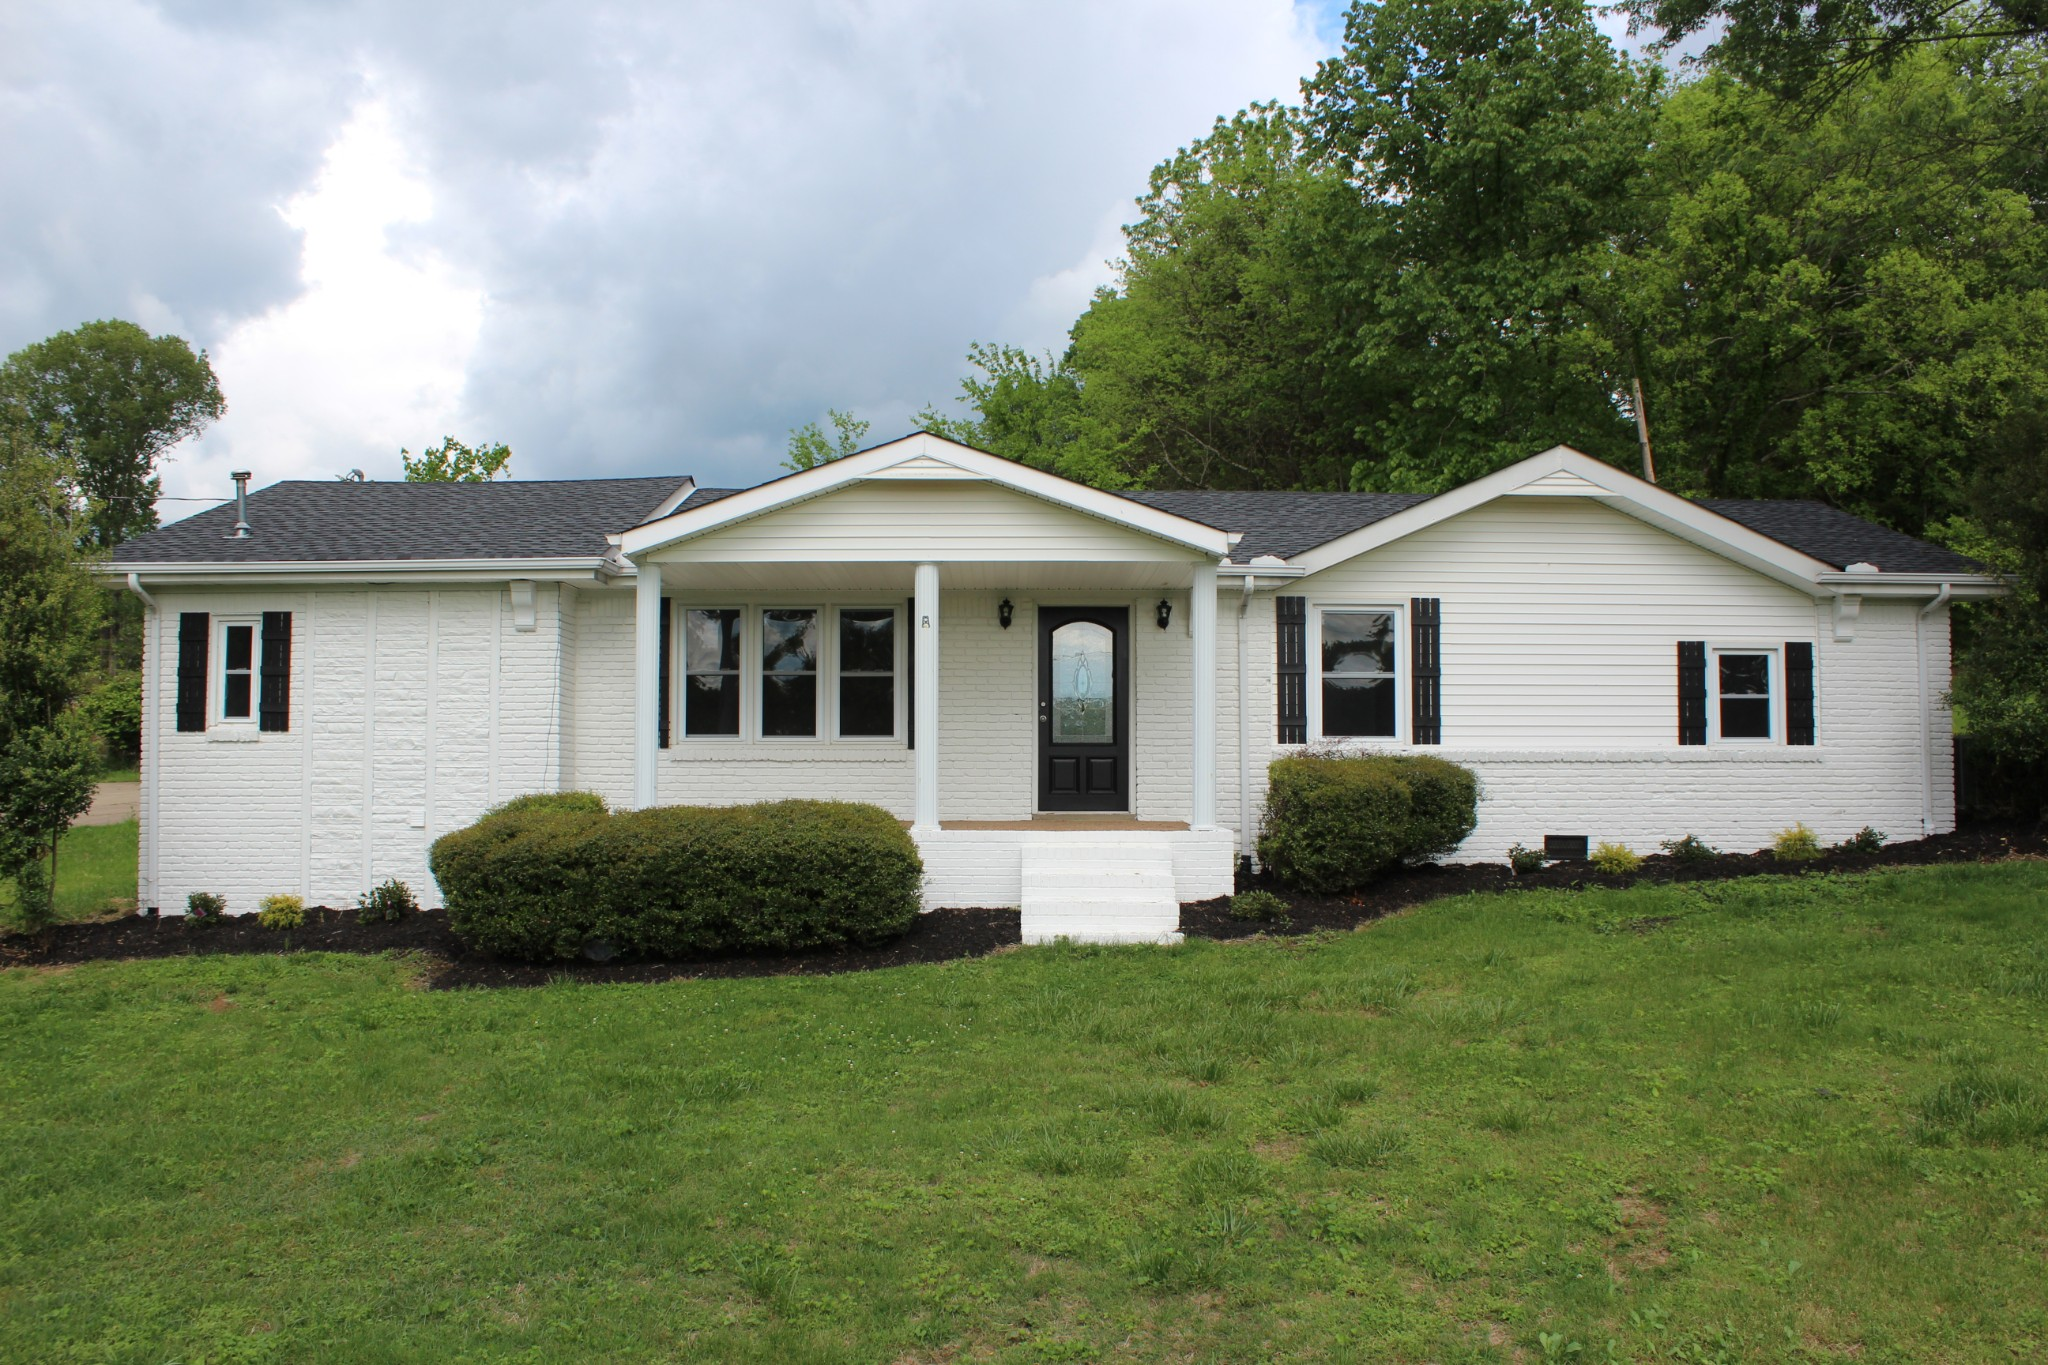 744 Driver Cir Property Photo - Hartsville, TN real estate listing